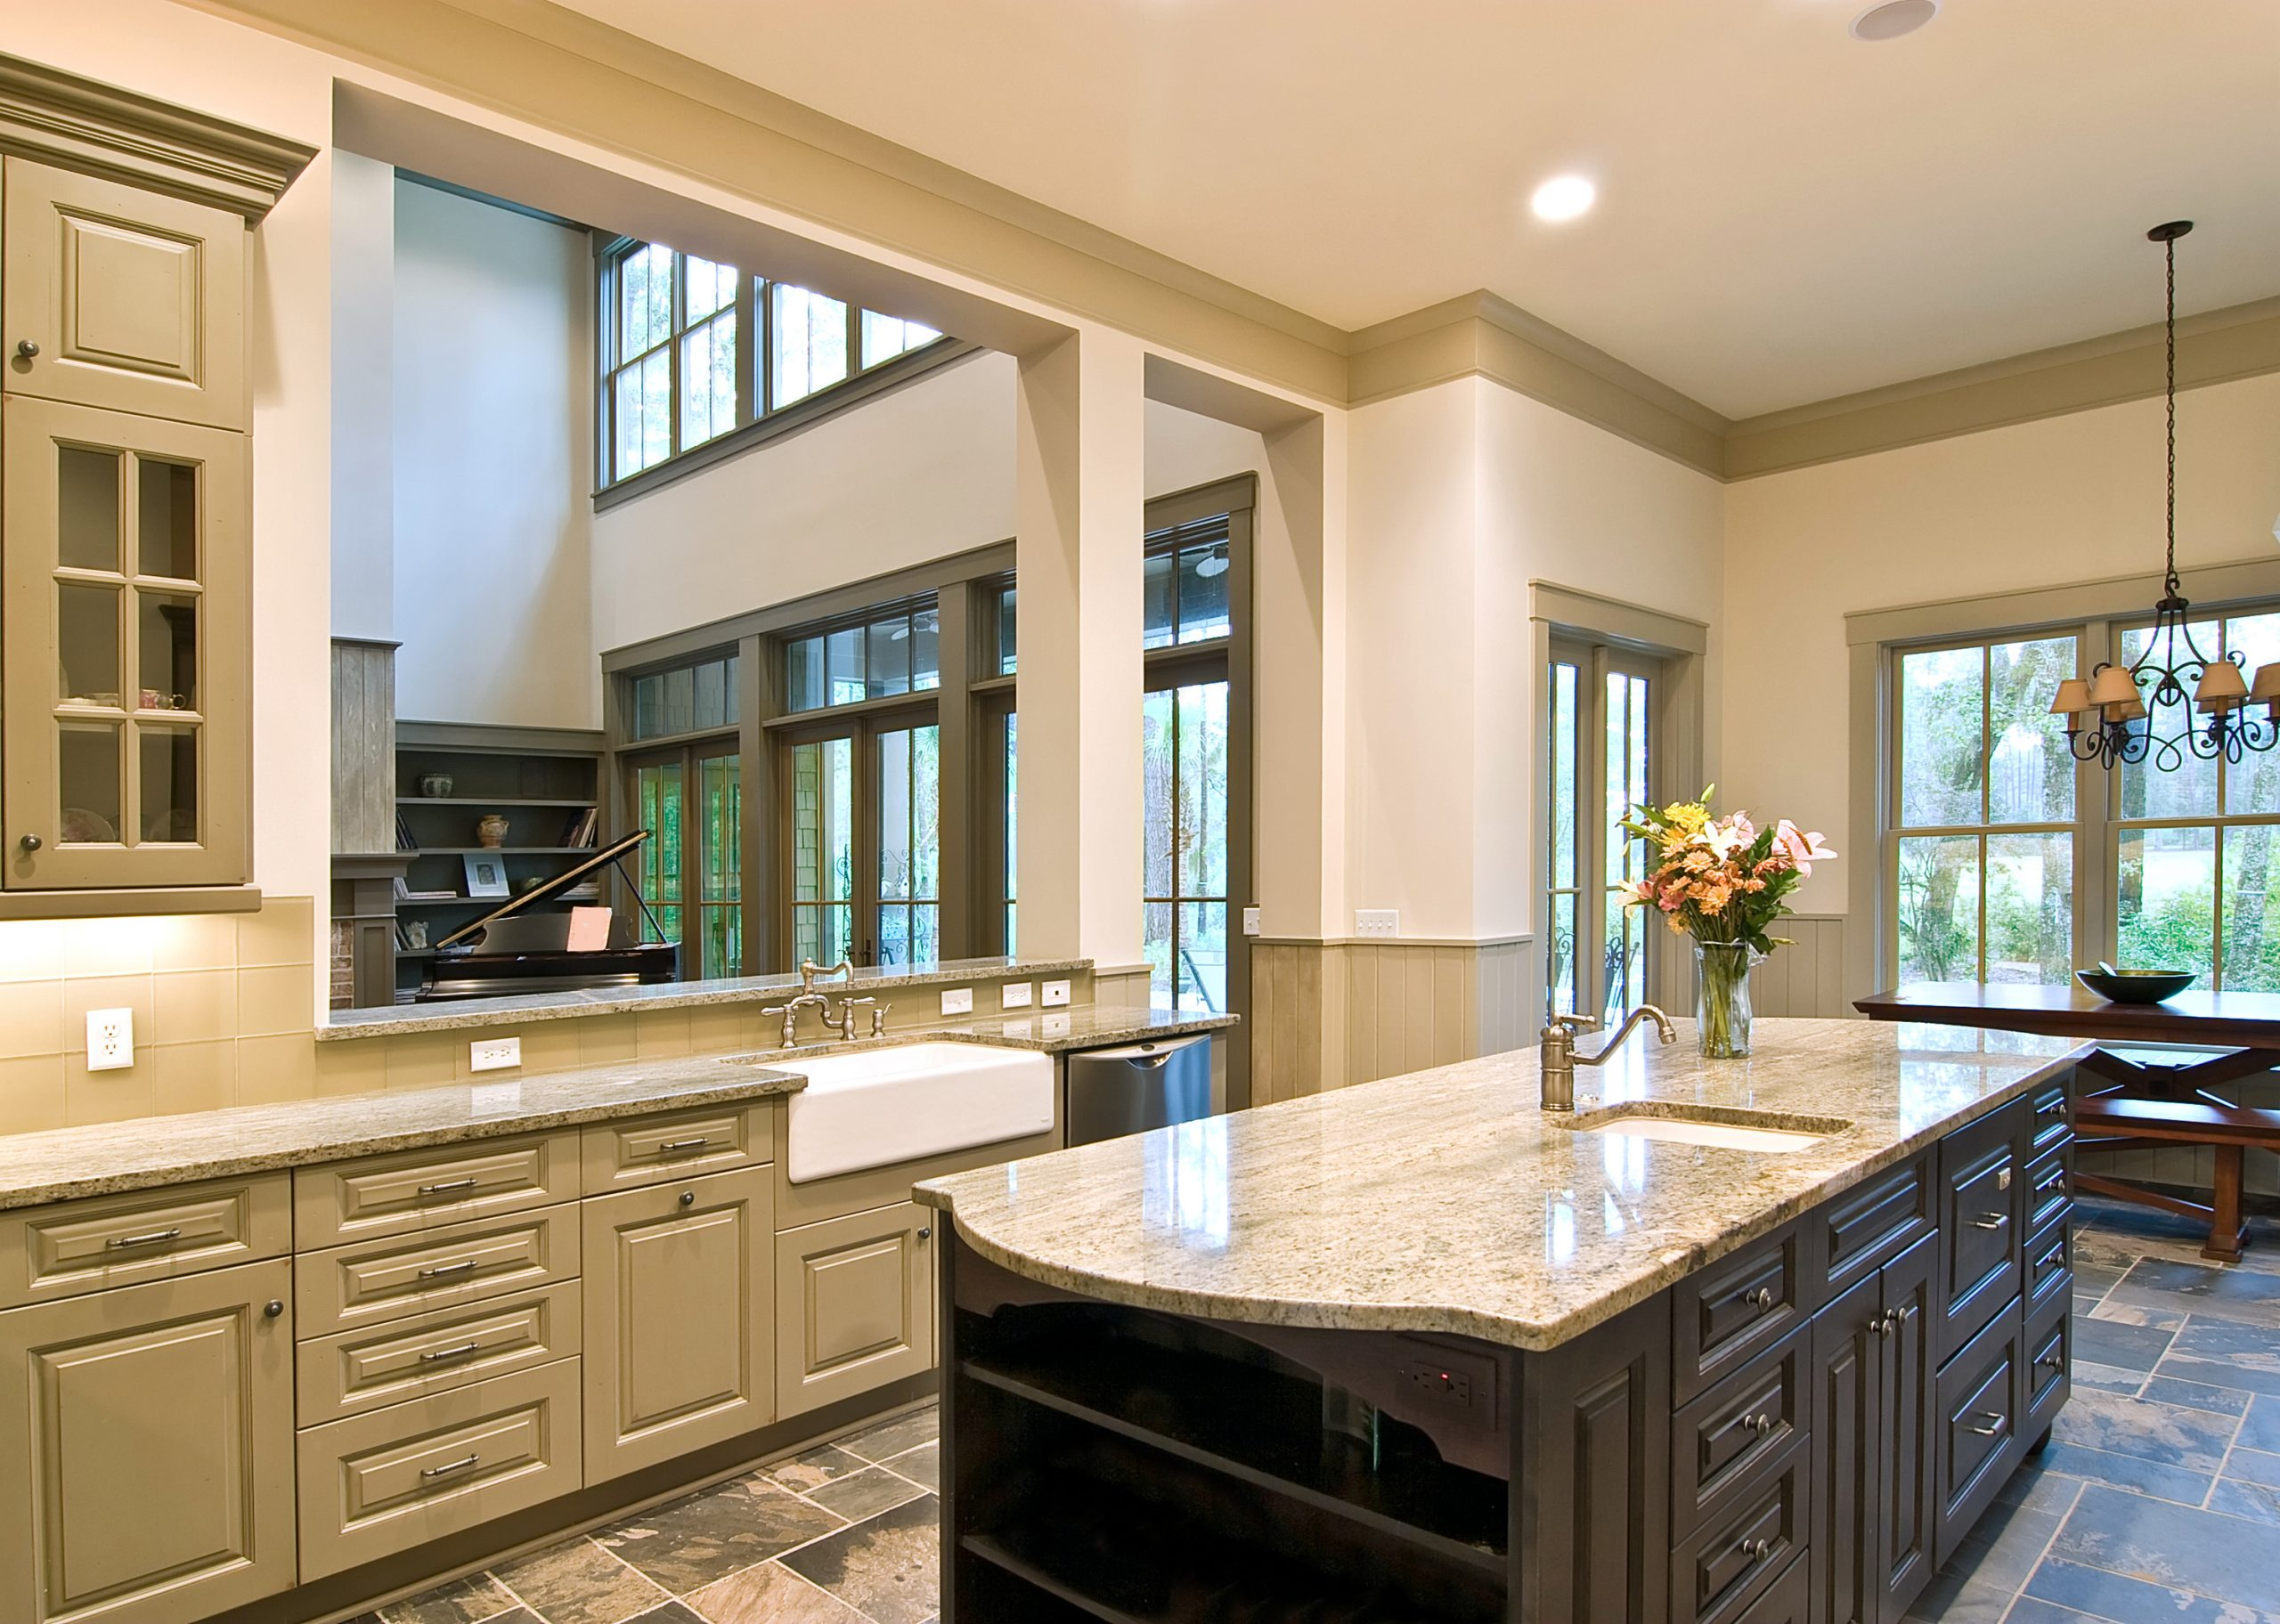 Kitchen Contracting Services in Newtown Square